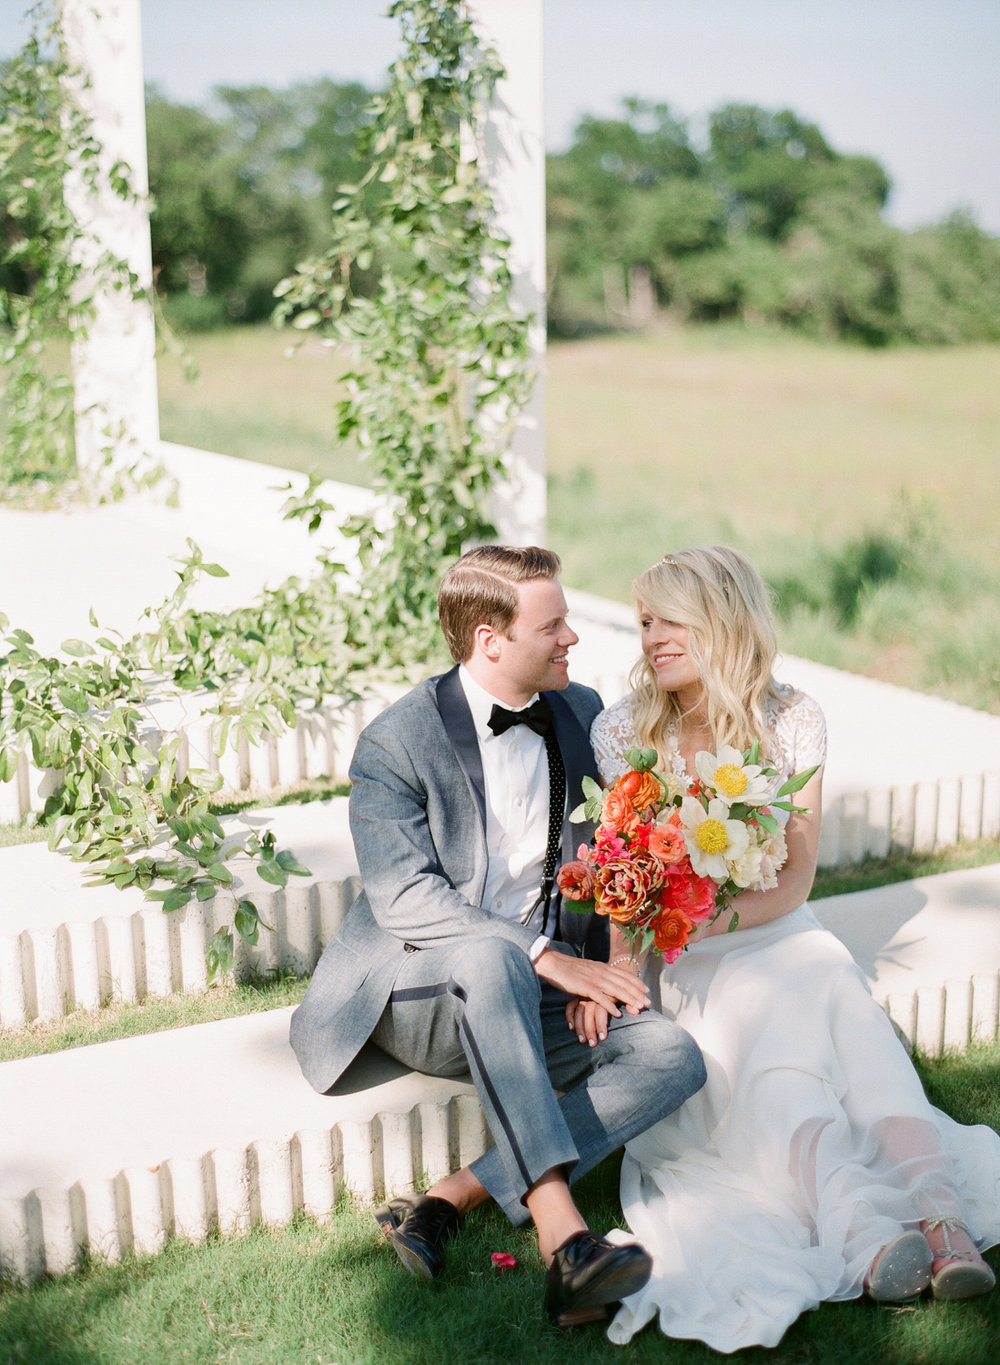 PROSPECT_HOUSE_WEDDING_AUSTIN_TX_BY_MATTHEW_MOORE_PHOTOGRAPHY_00120.jpg